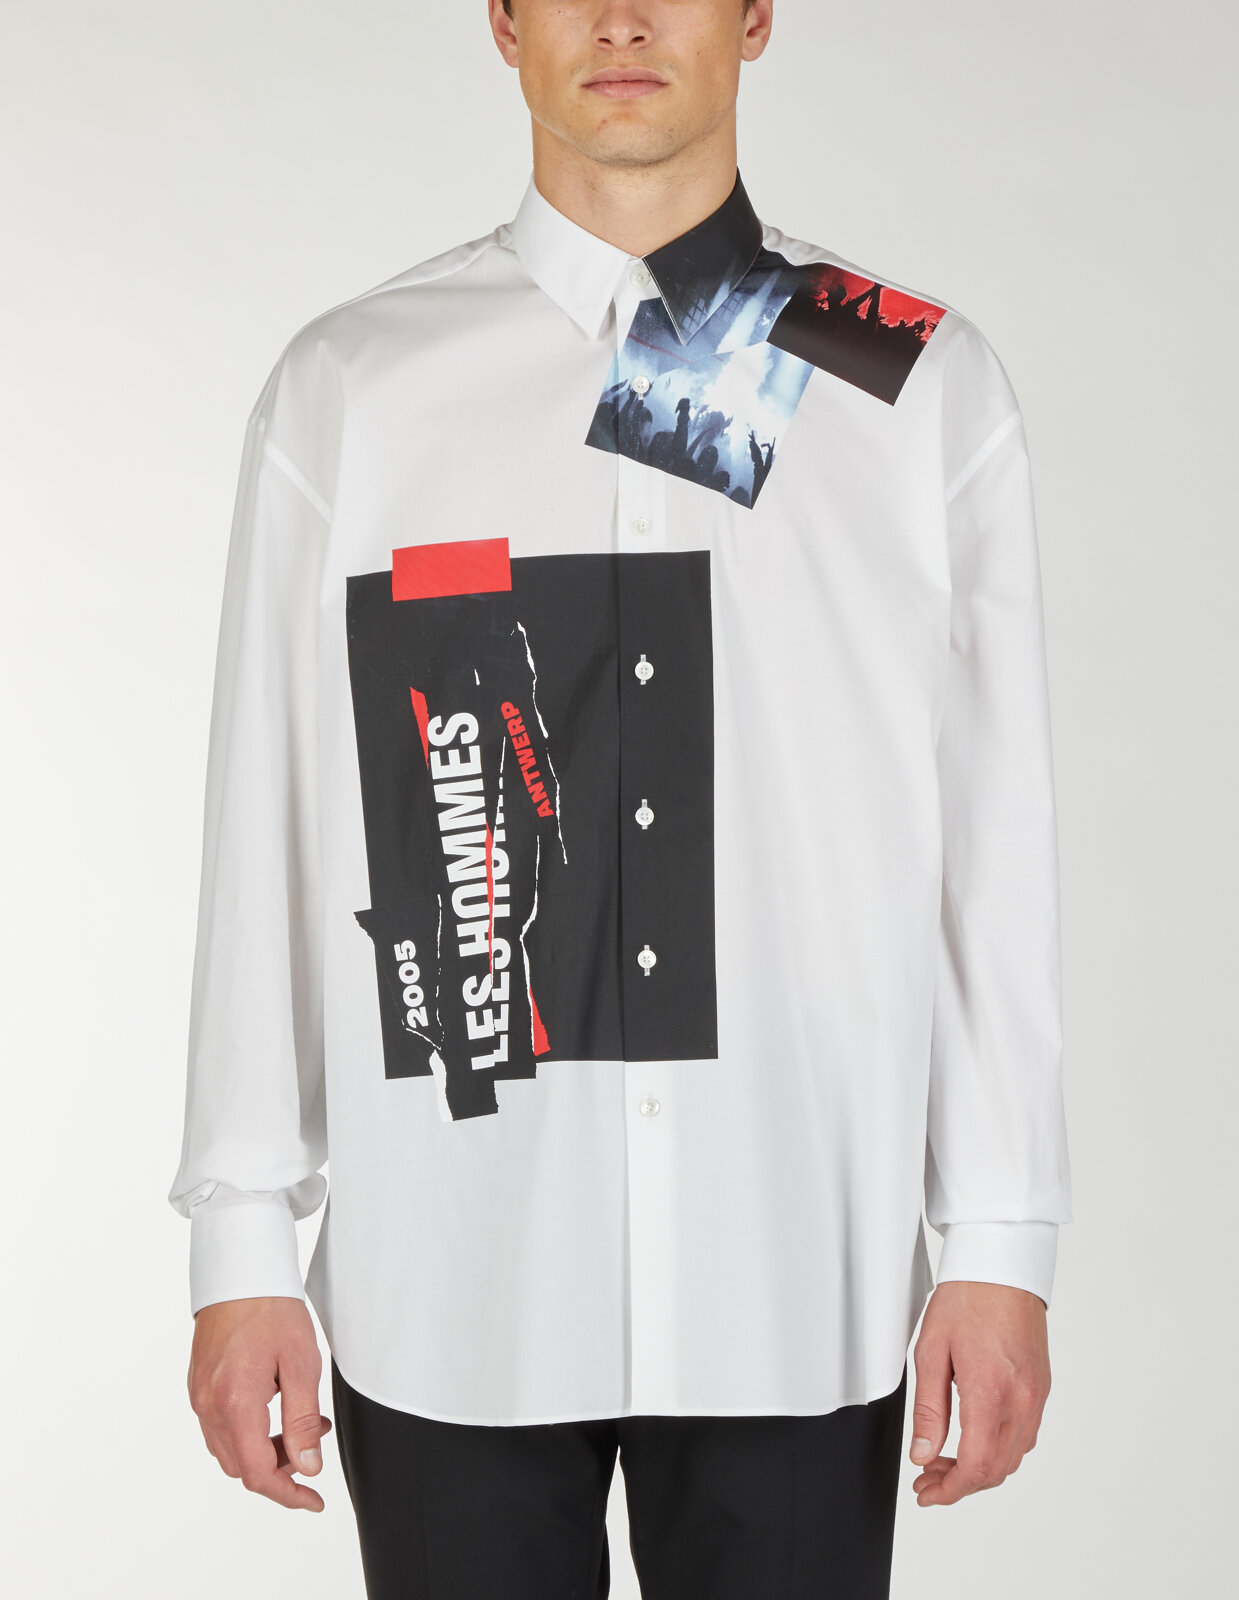 Camicia oversize con stampa collage - Les Hommes